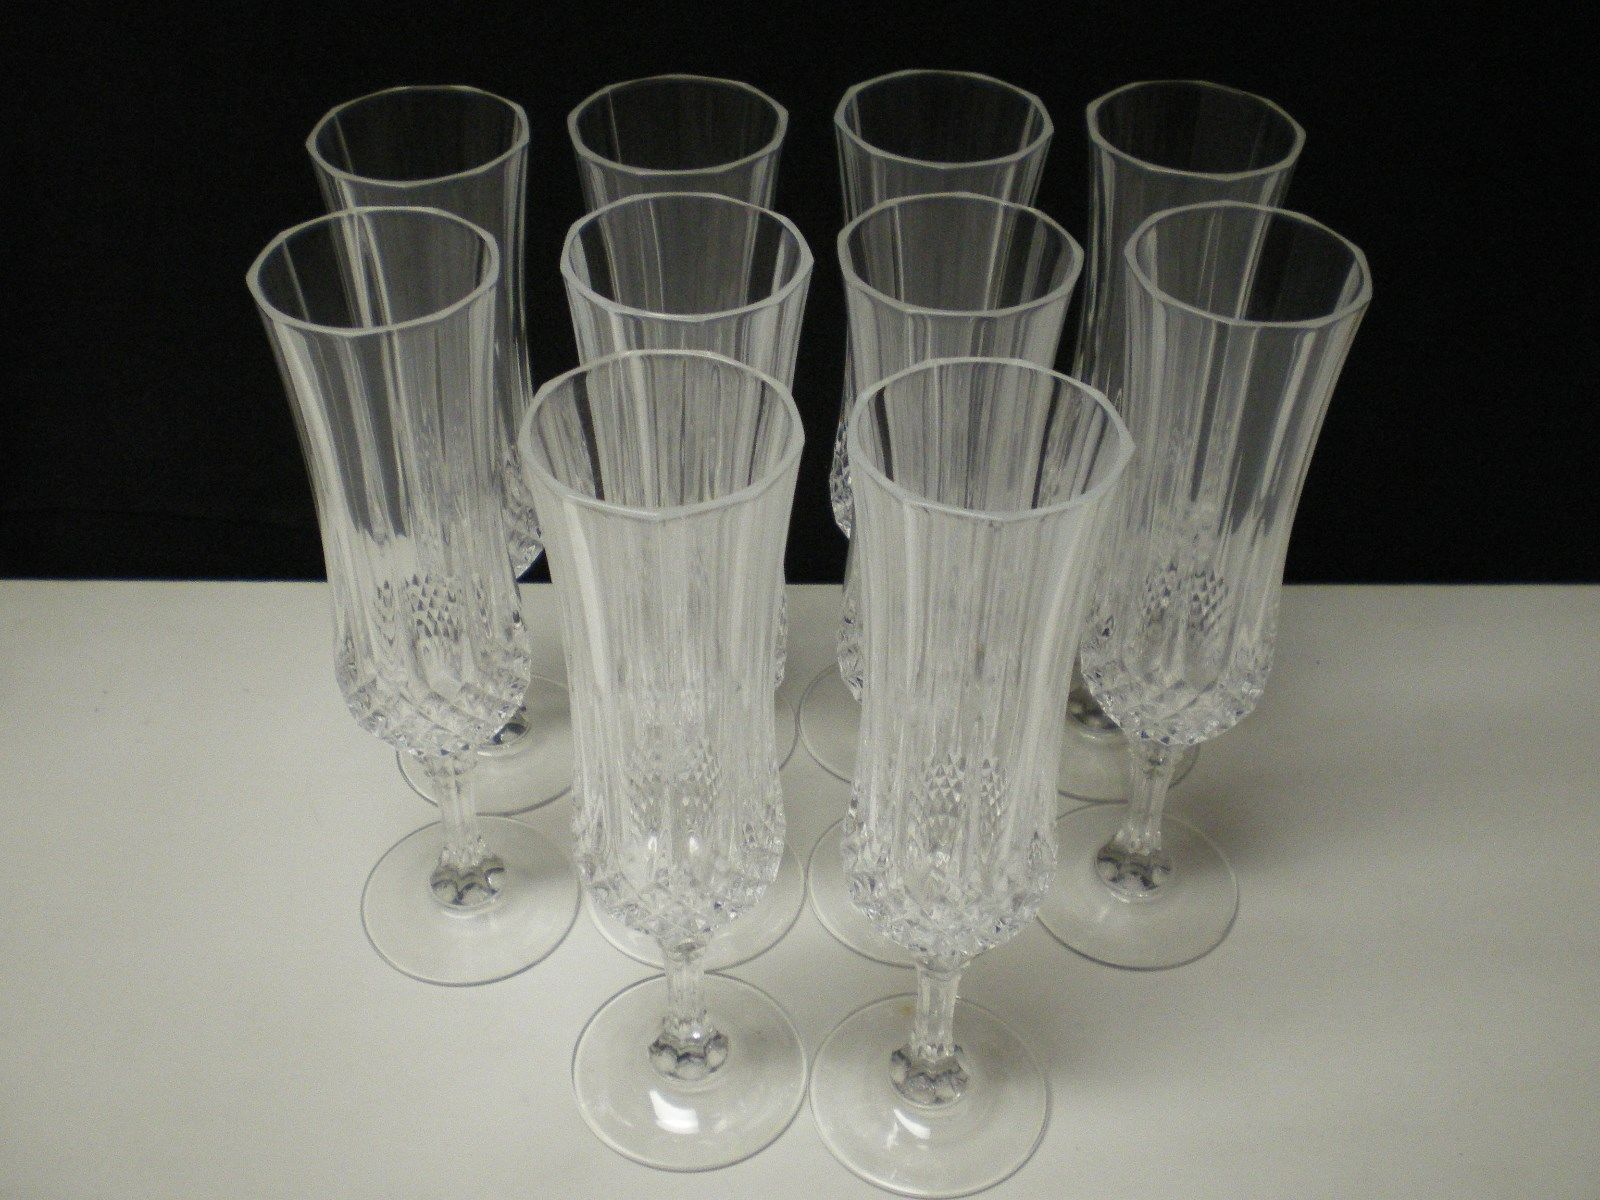 Primary image for 10 Cristal d'Arques Longchamp Tall Champagne Flutes~~~~have more